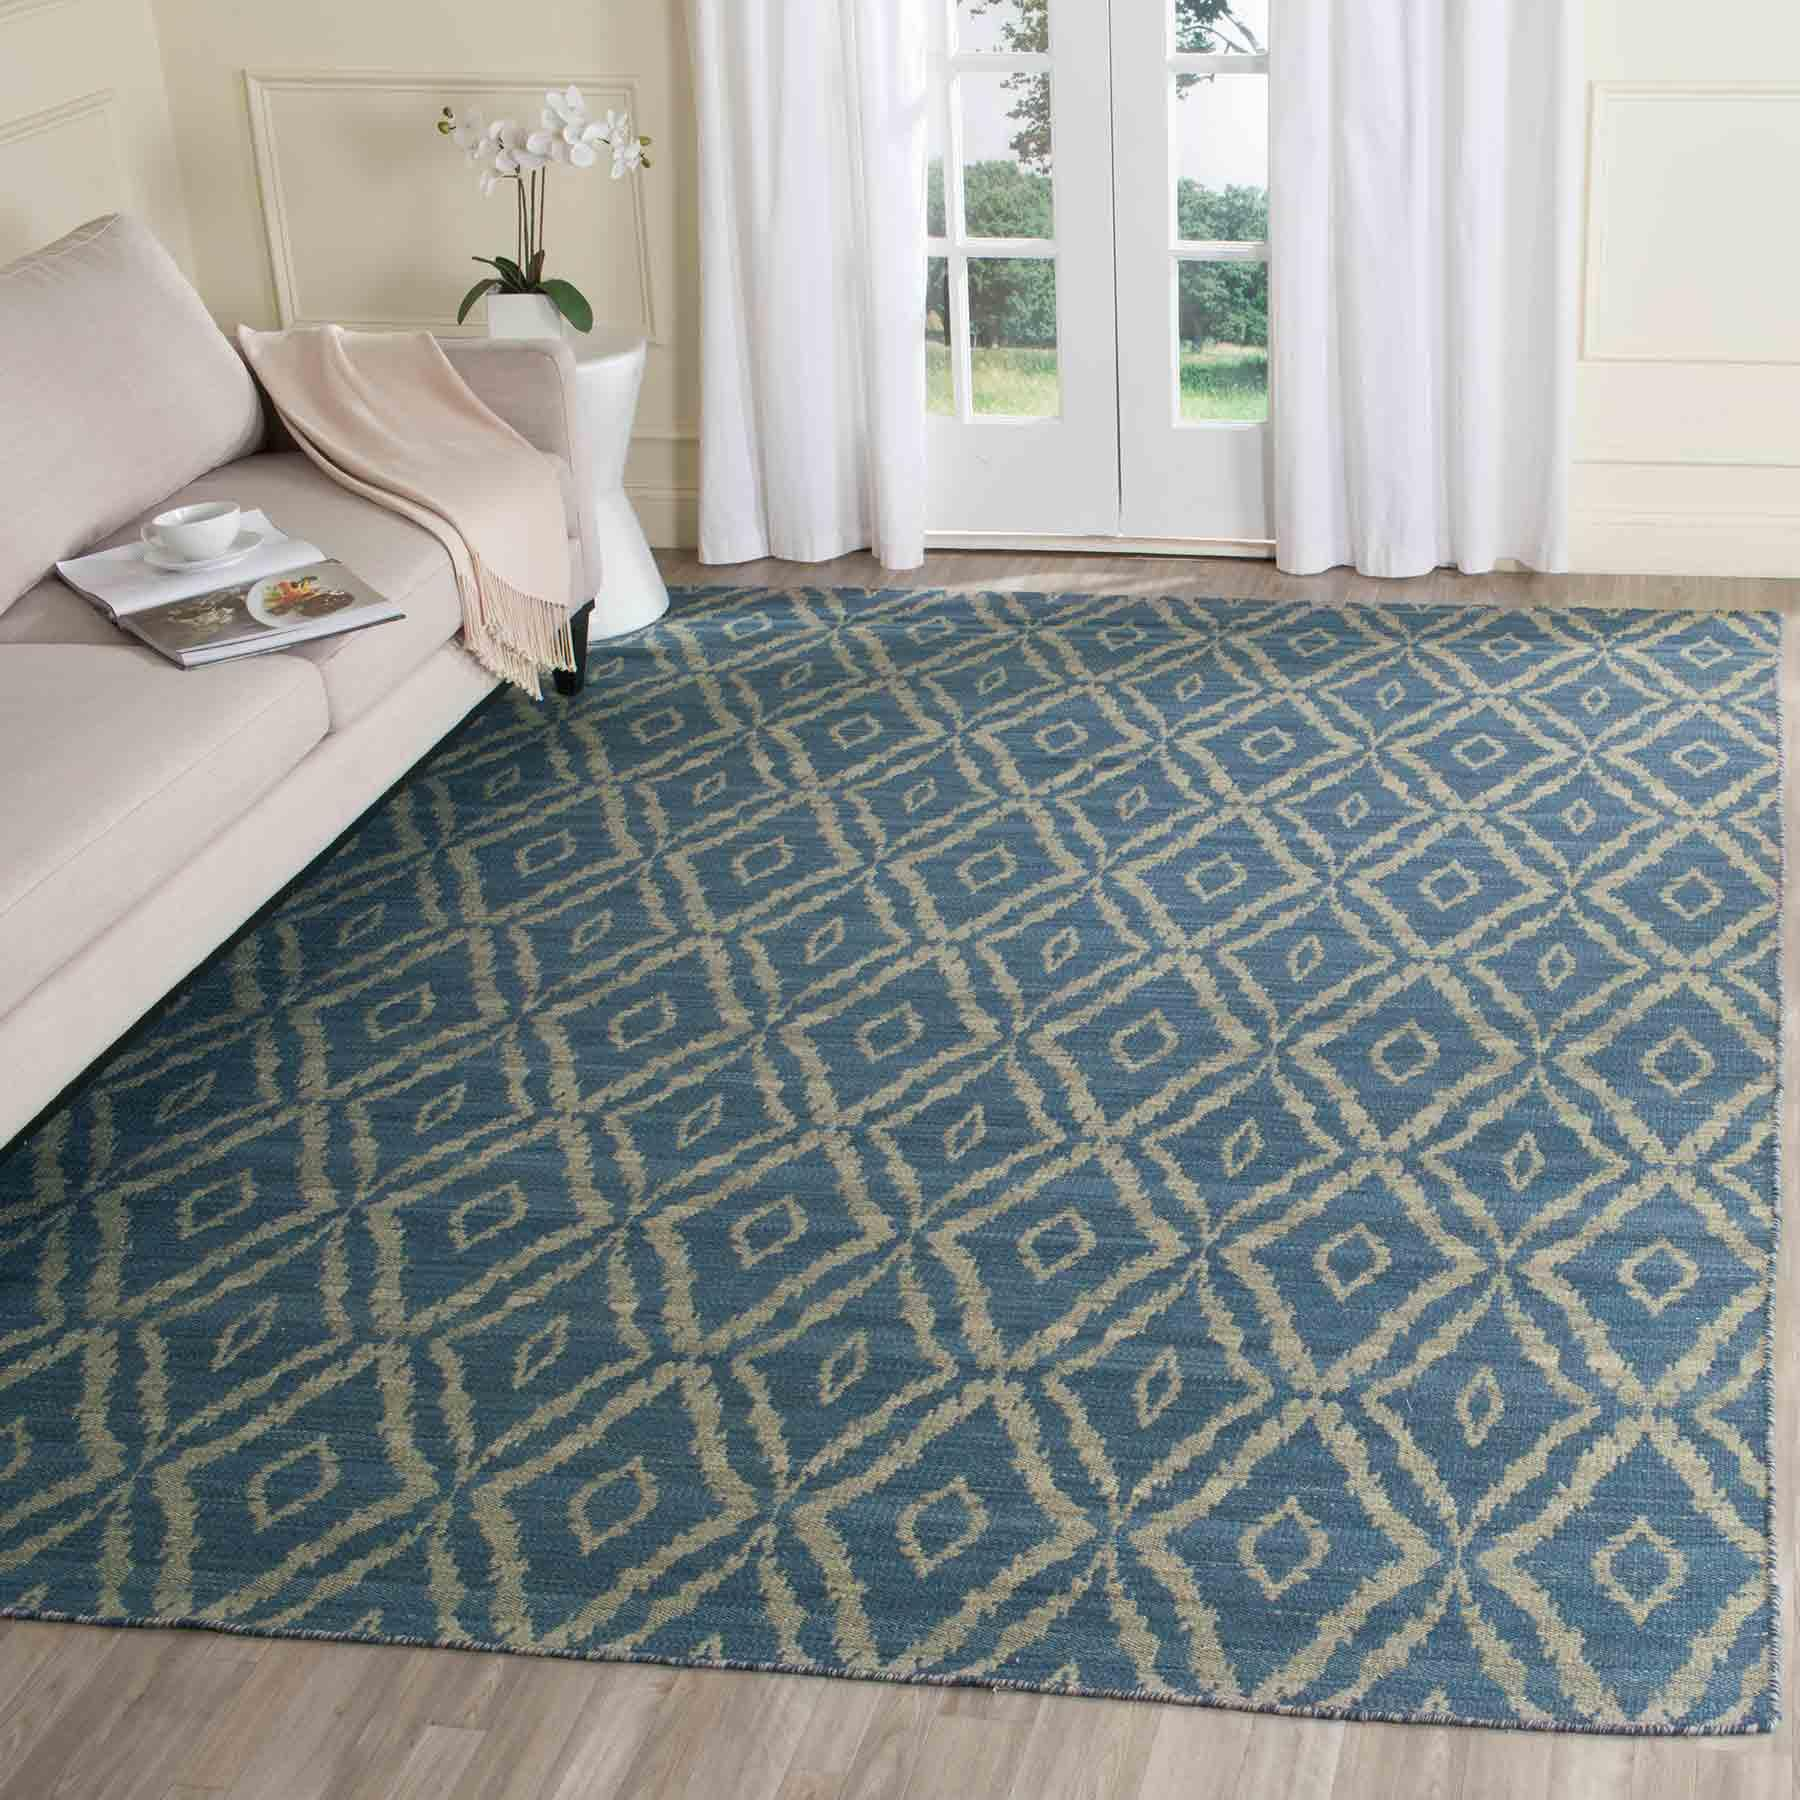 8x10 Bedroom Rug Area Ideas